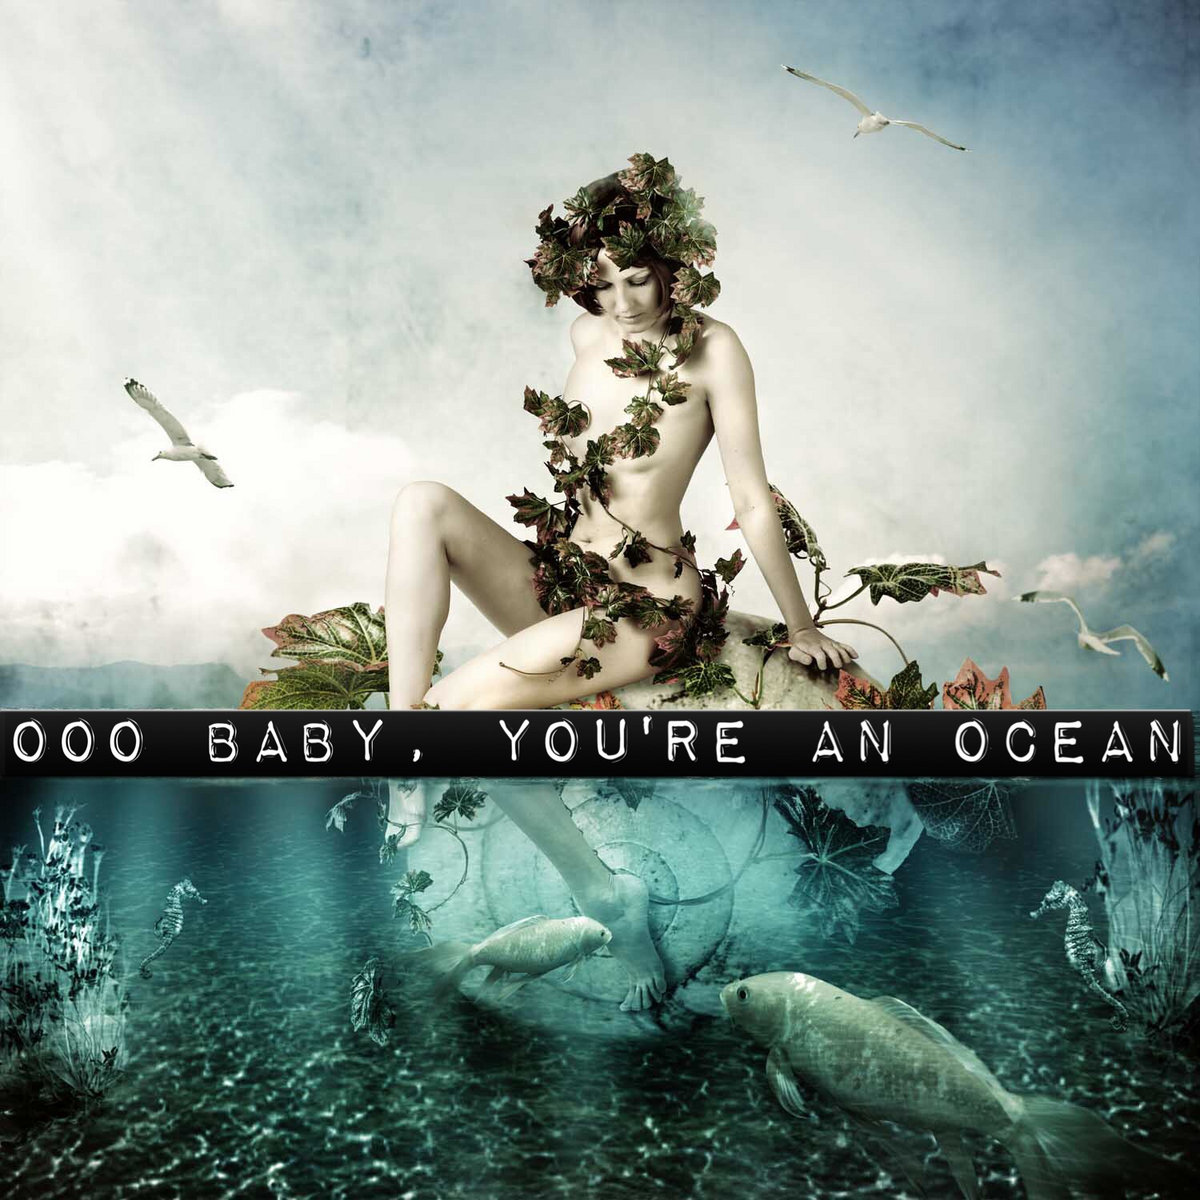 Ooo Baby,You're an Ocean by Doug Elkins